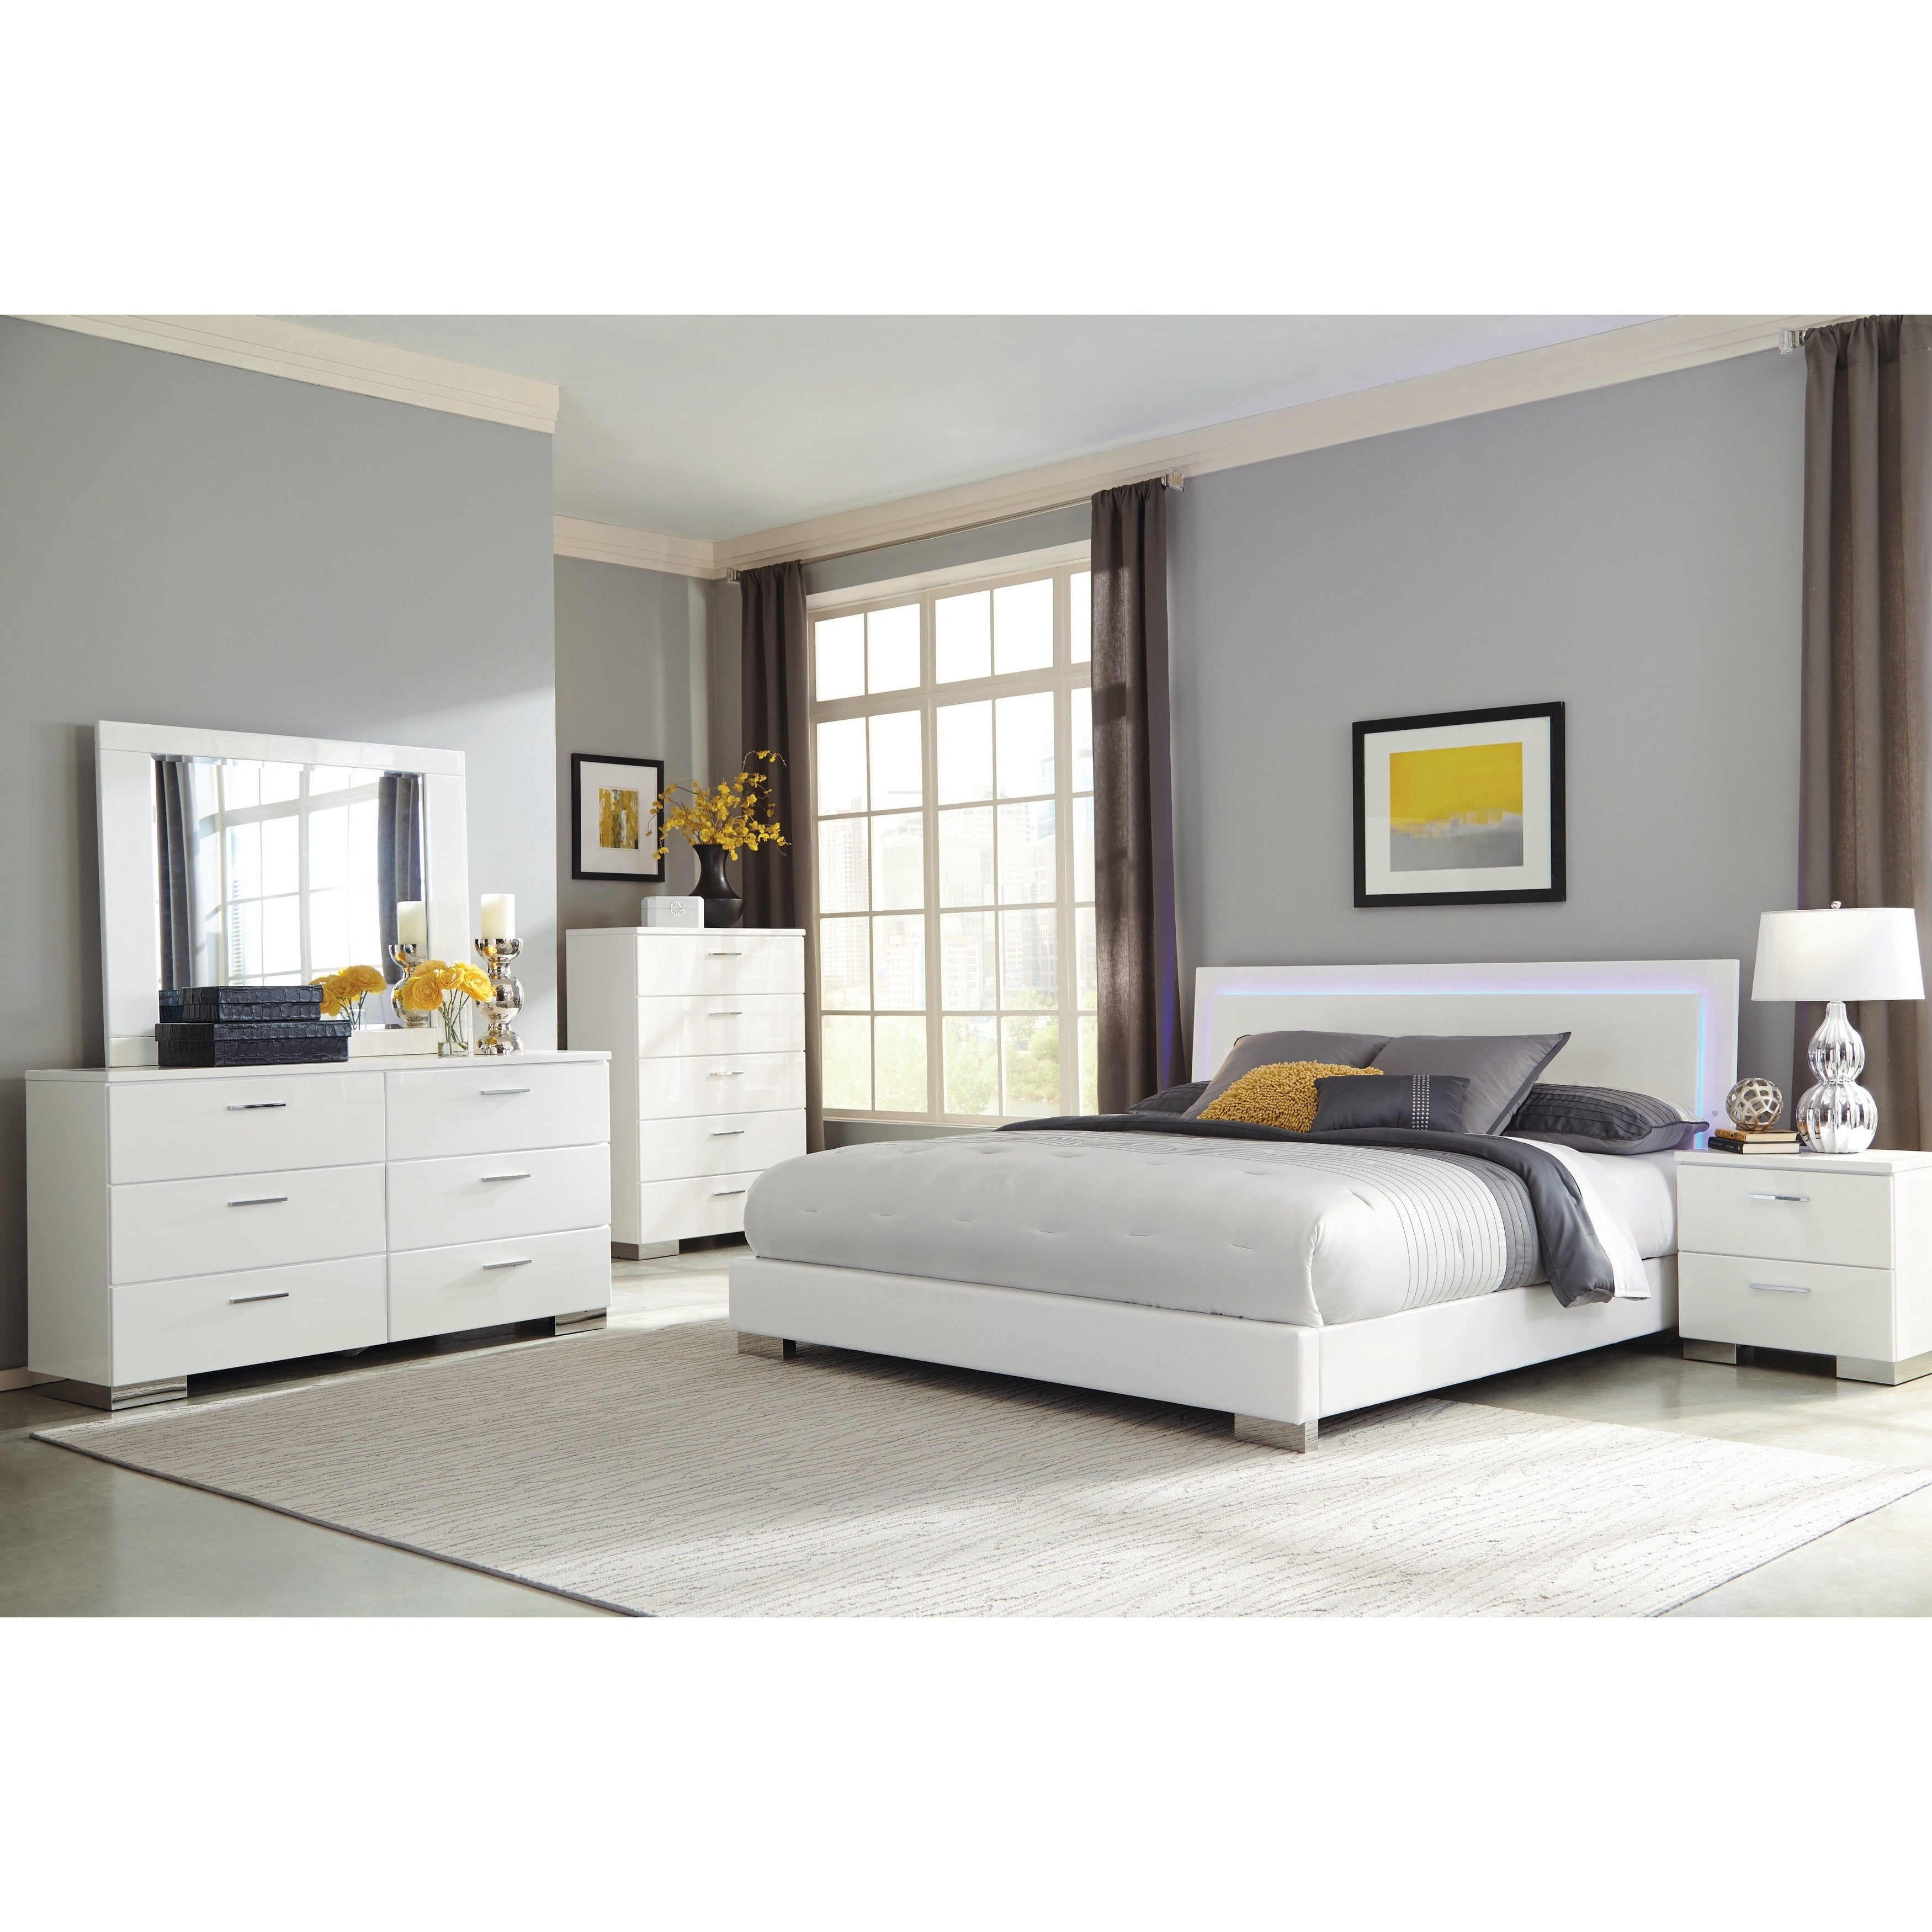 Shop Strick & Bolton Alice White 4-piece Bedroom Set with LED ...